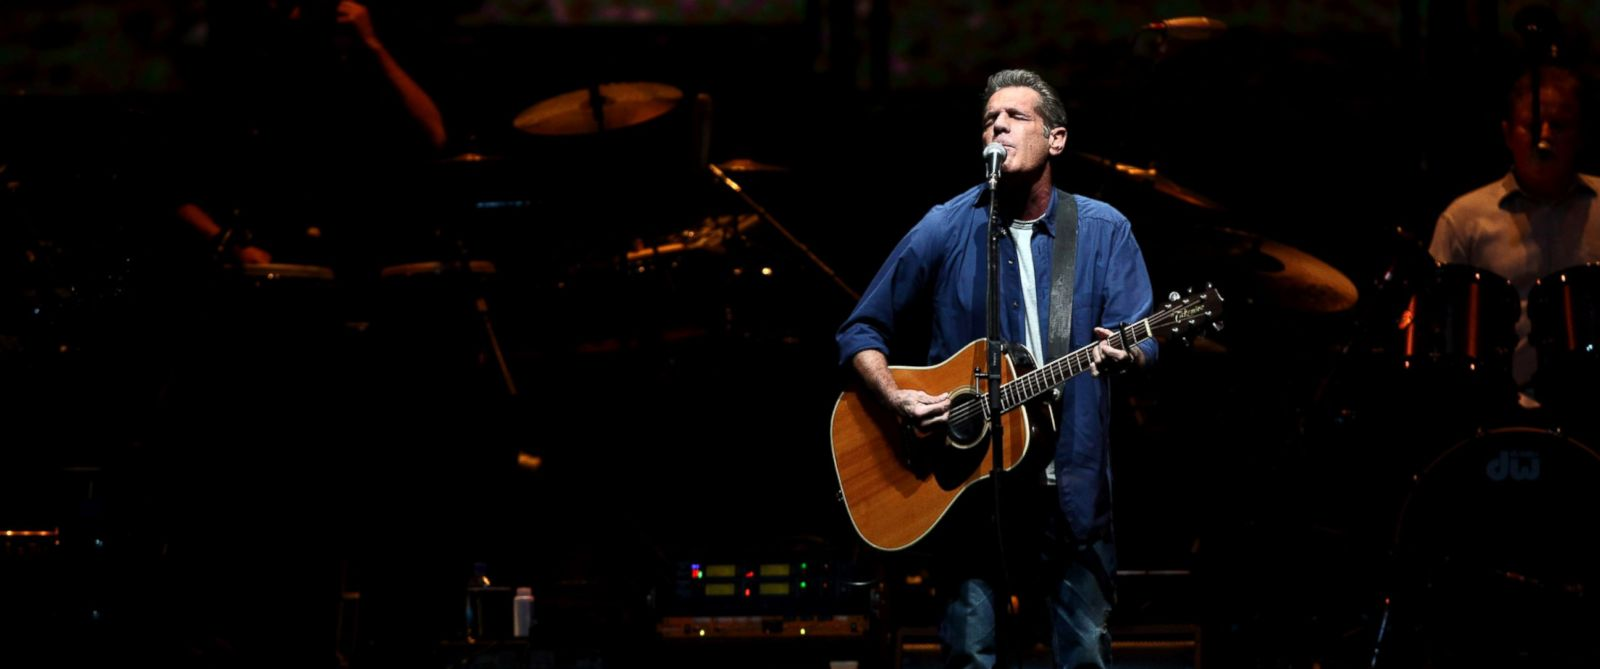 PHOTO: Glenn Frey of The Eagles performs at the grand opening of the newly renovated Forum on Jan. 15, 2014 in Inglewood, California.